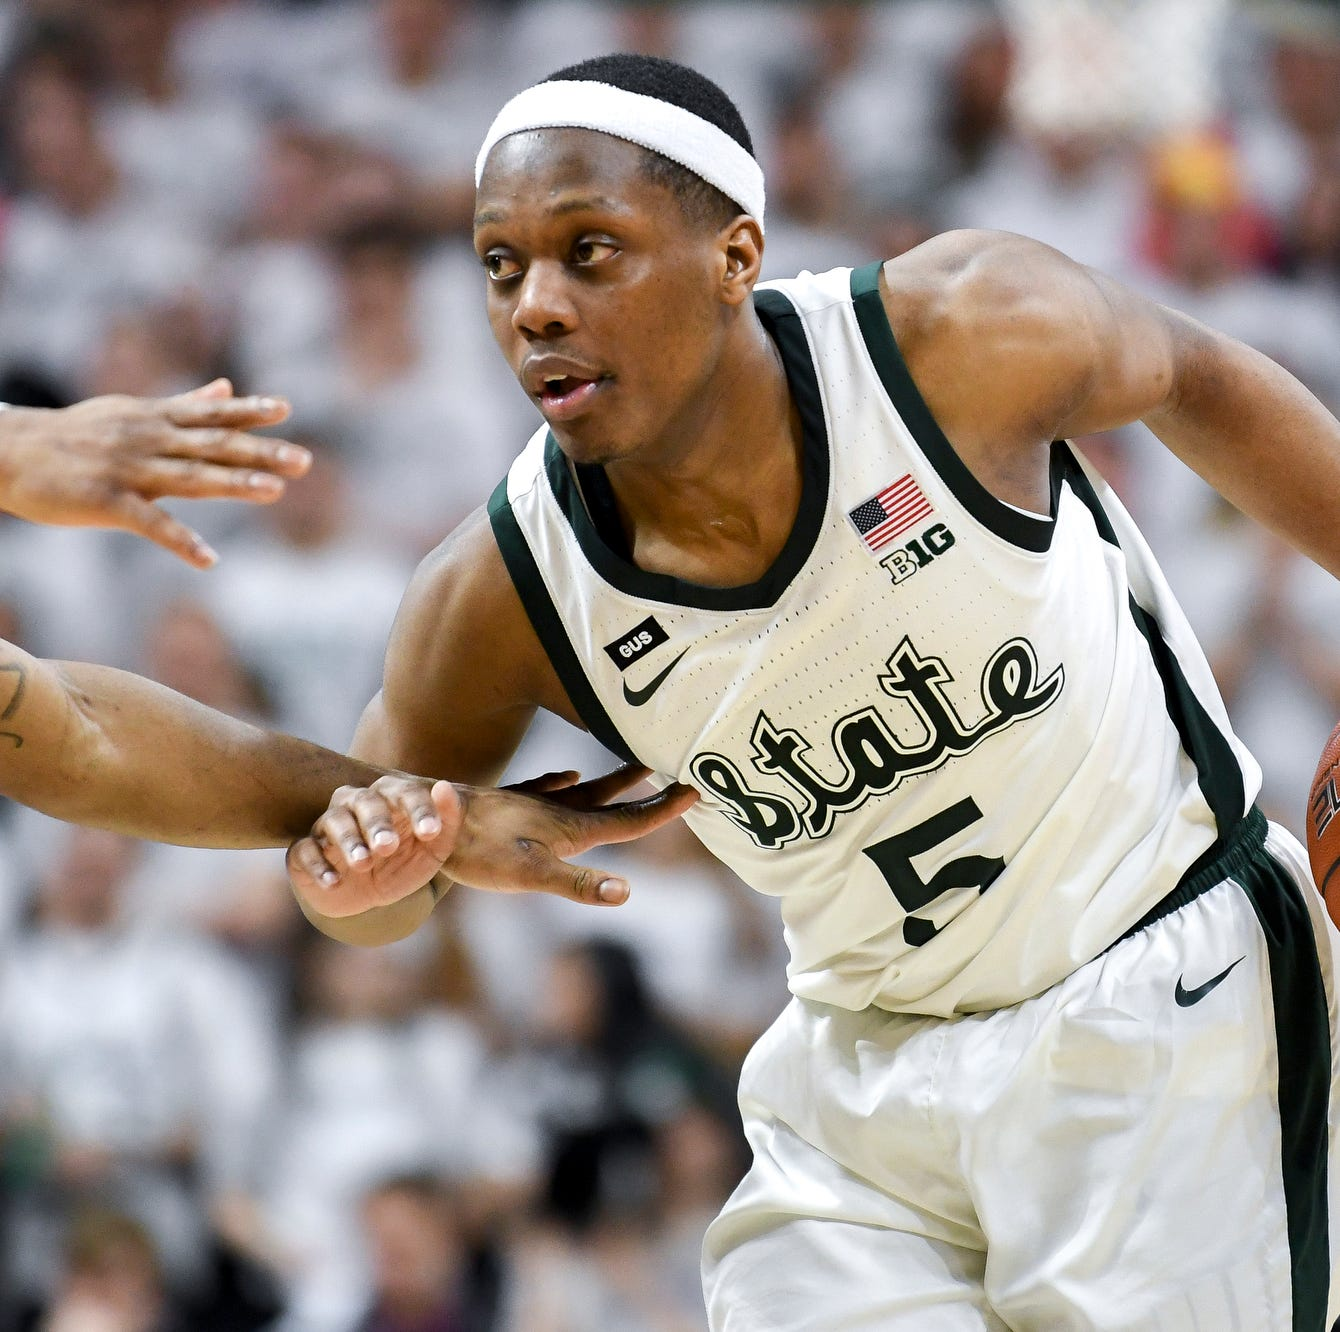 Michigan State basketball's Cassius Winston 'used to think the power was in the headband'